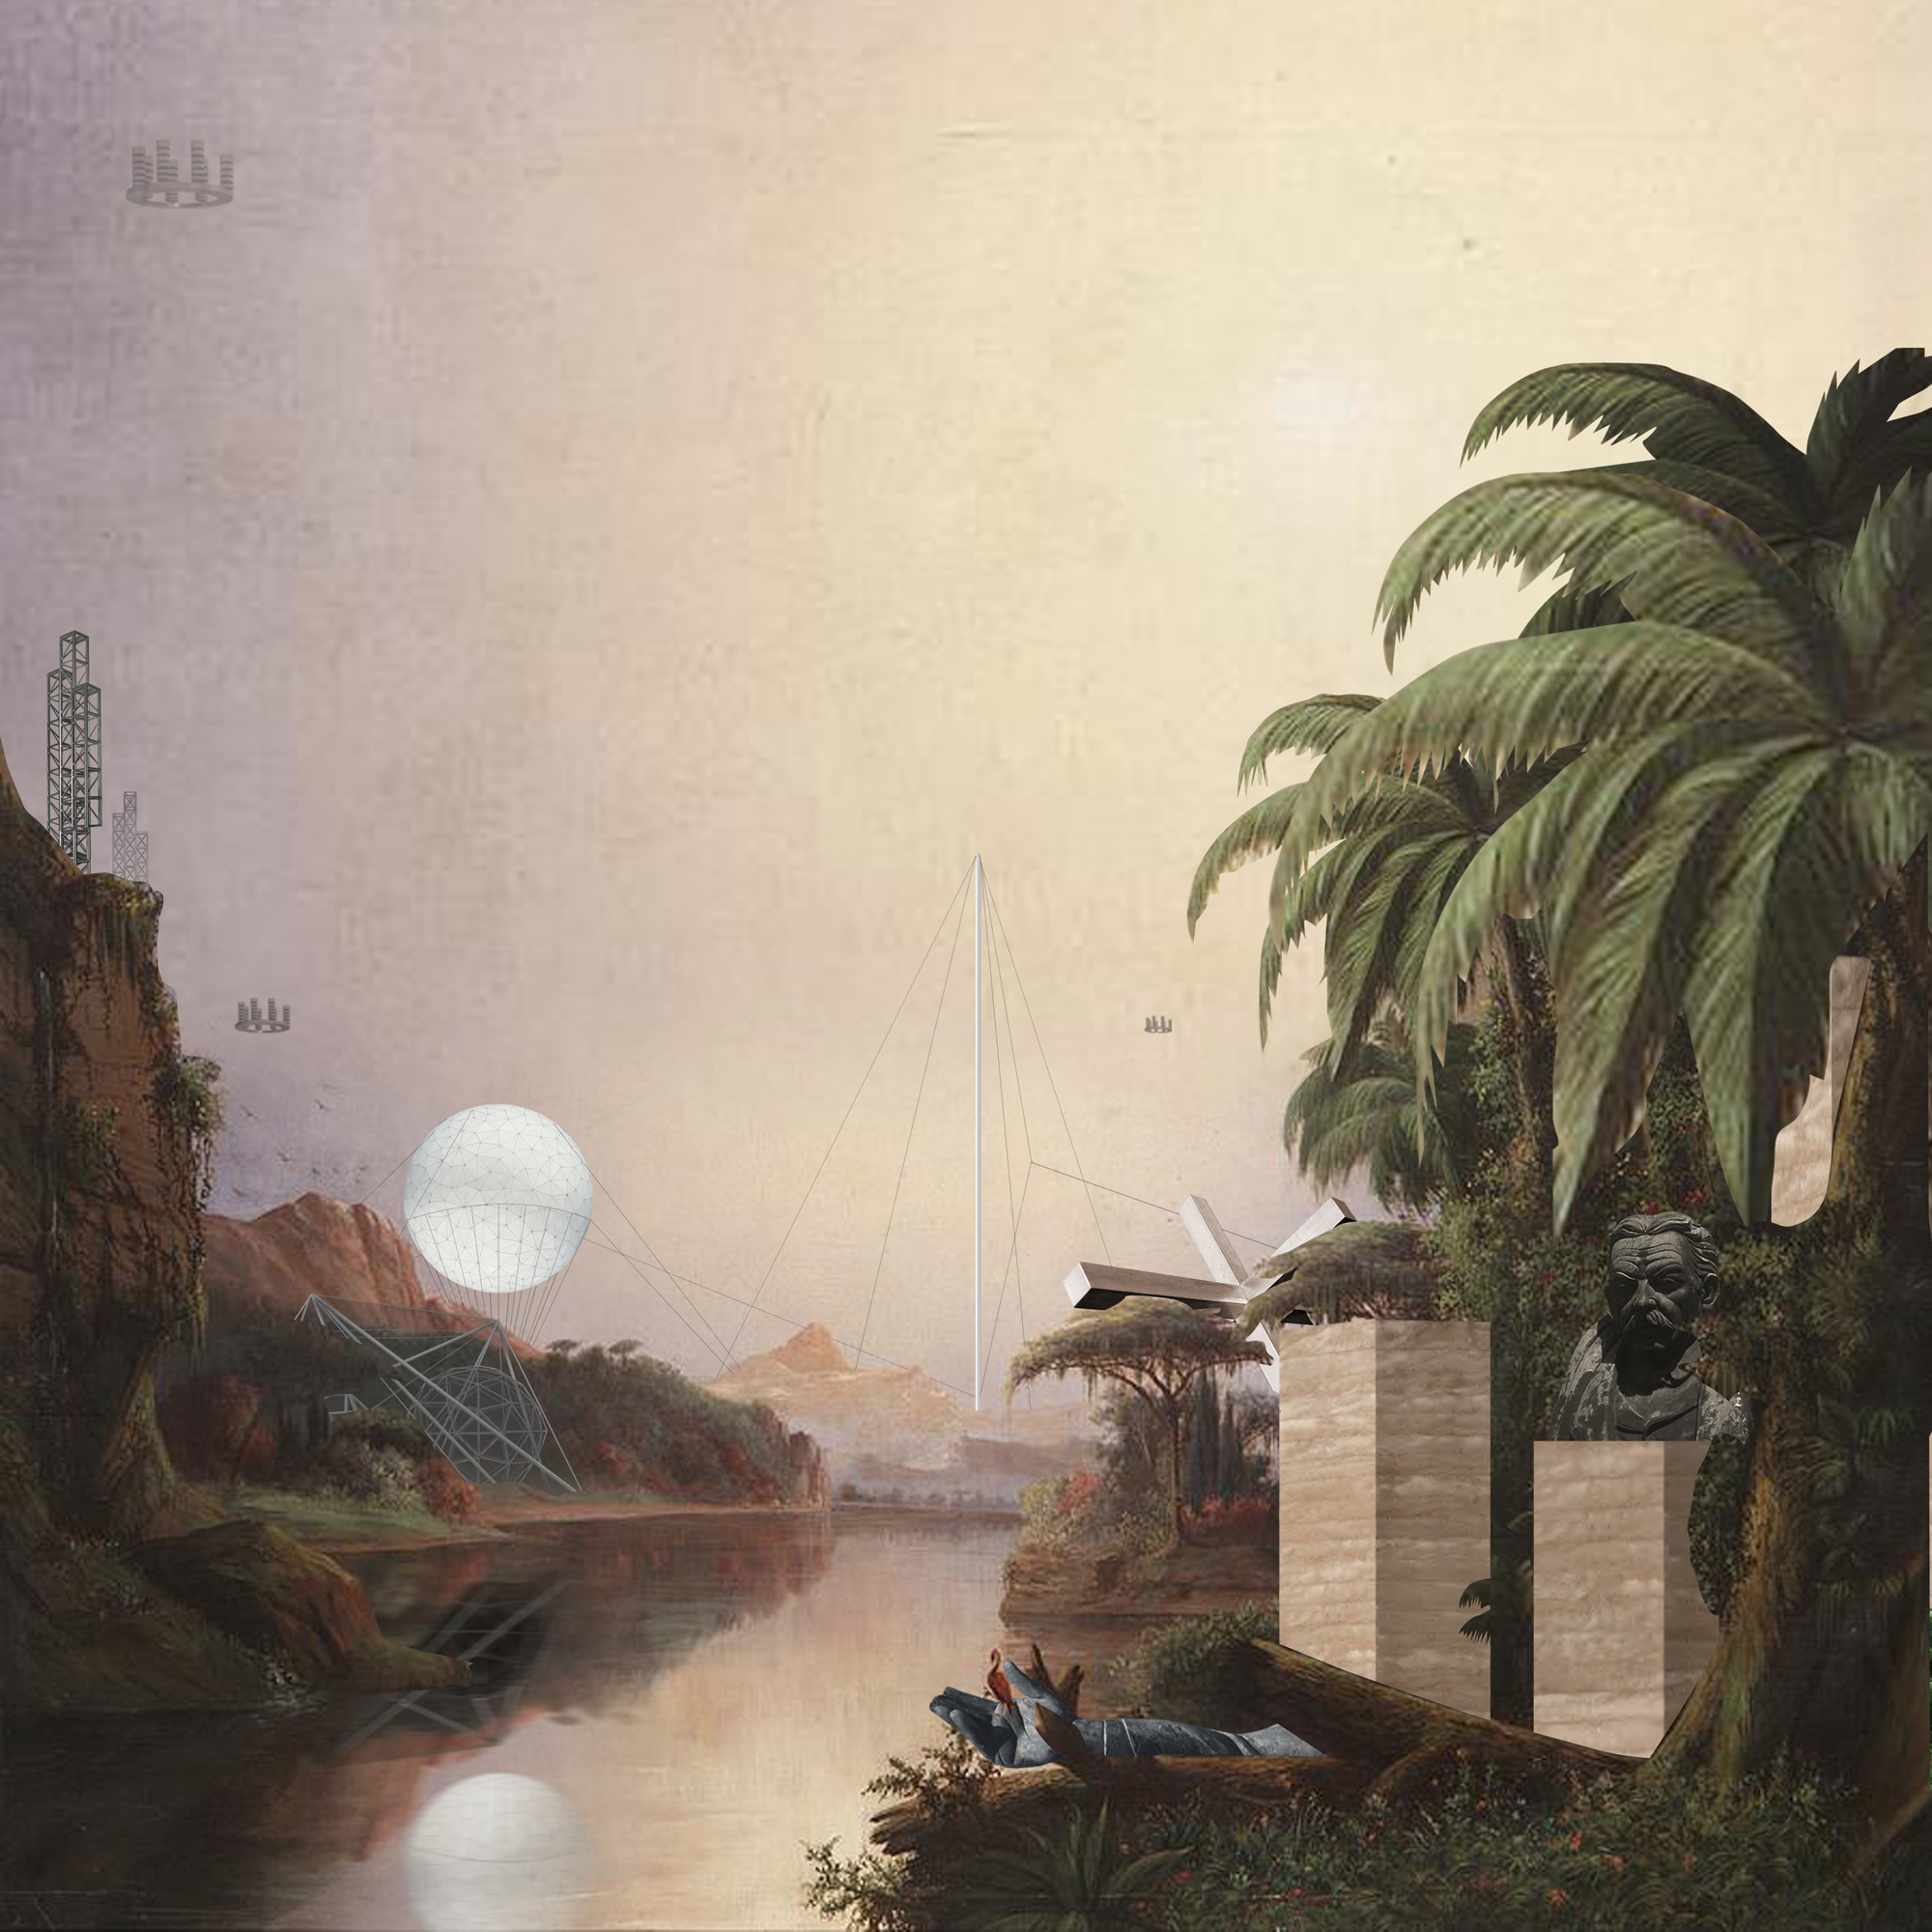 Postcolonial Landscape Image by WAI Think Tank